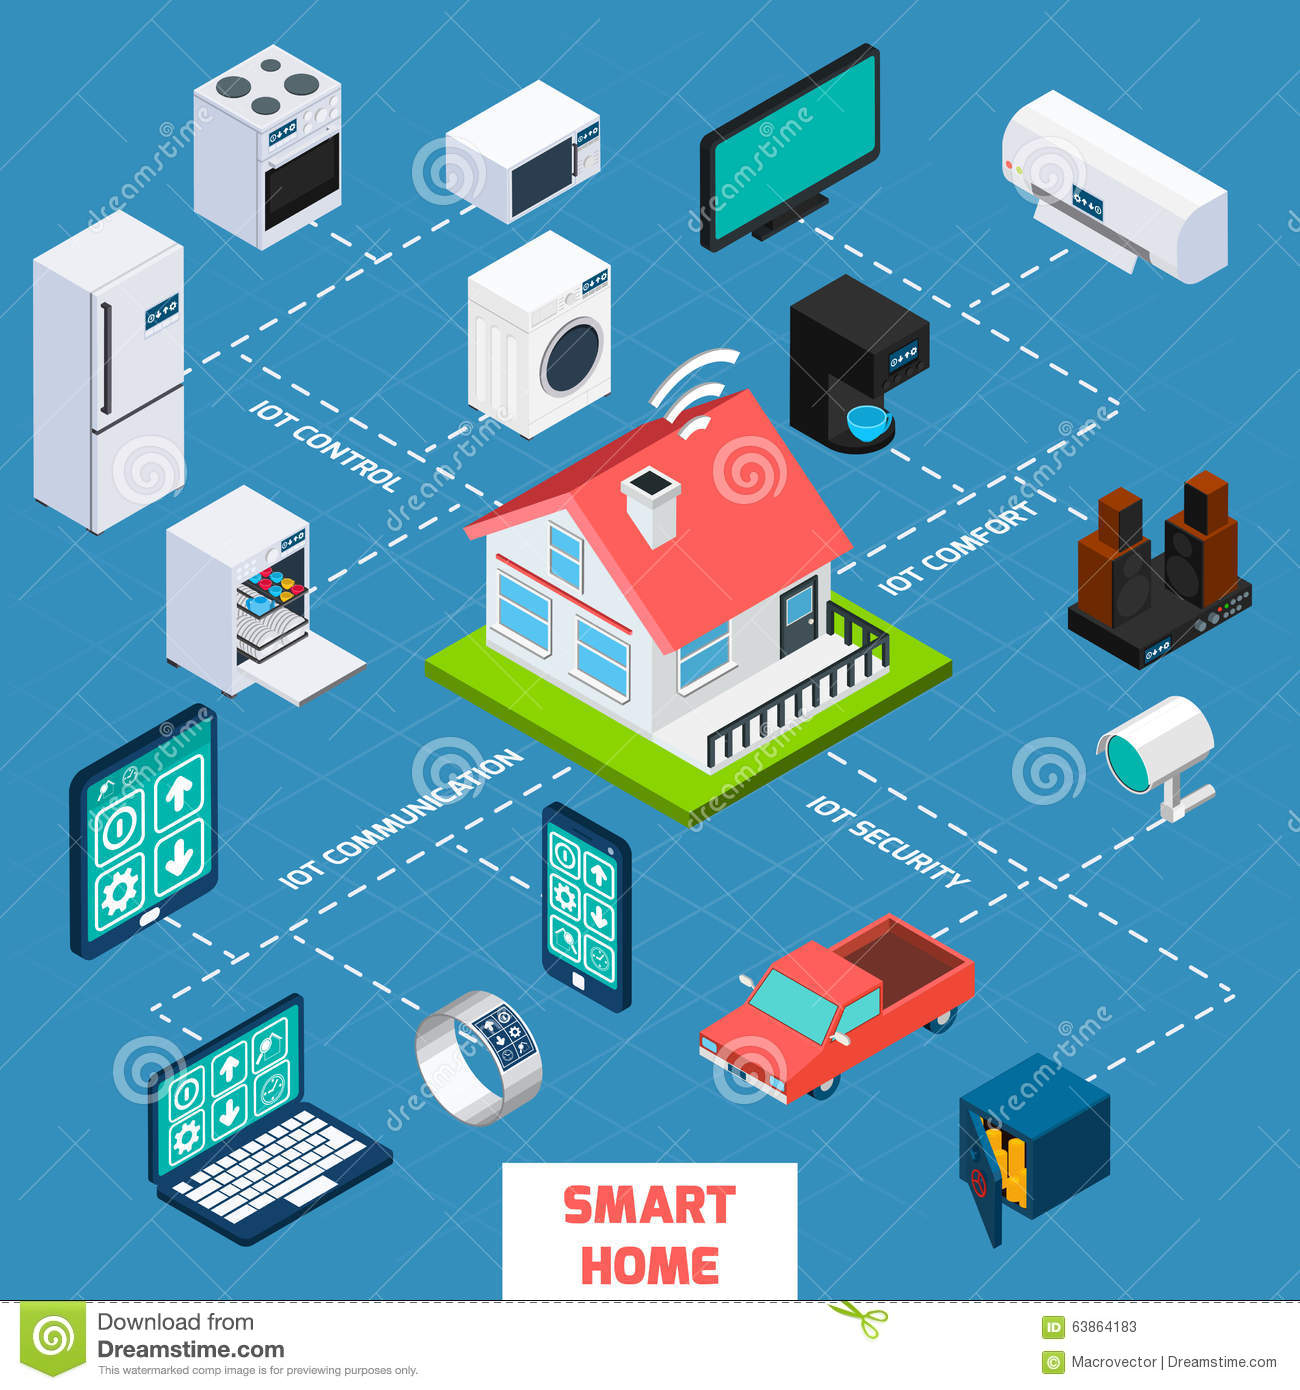 Smart home isometric flowchart icon stock vector for Internet house